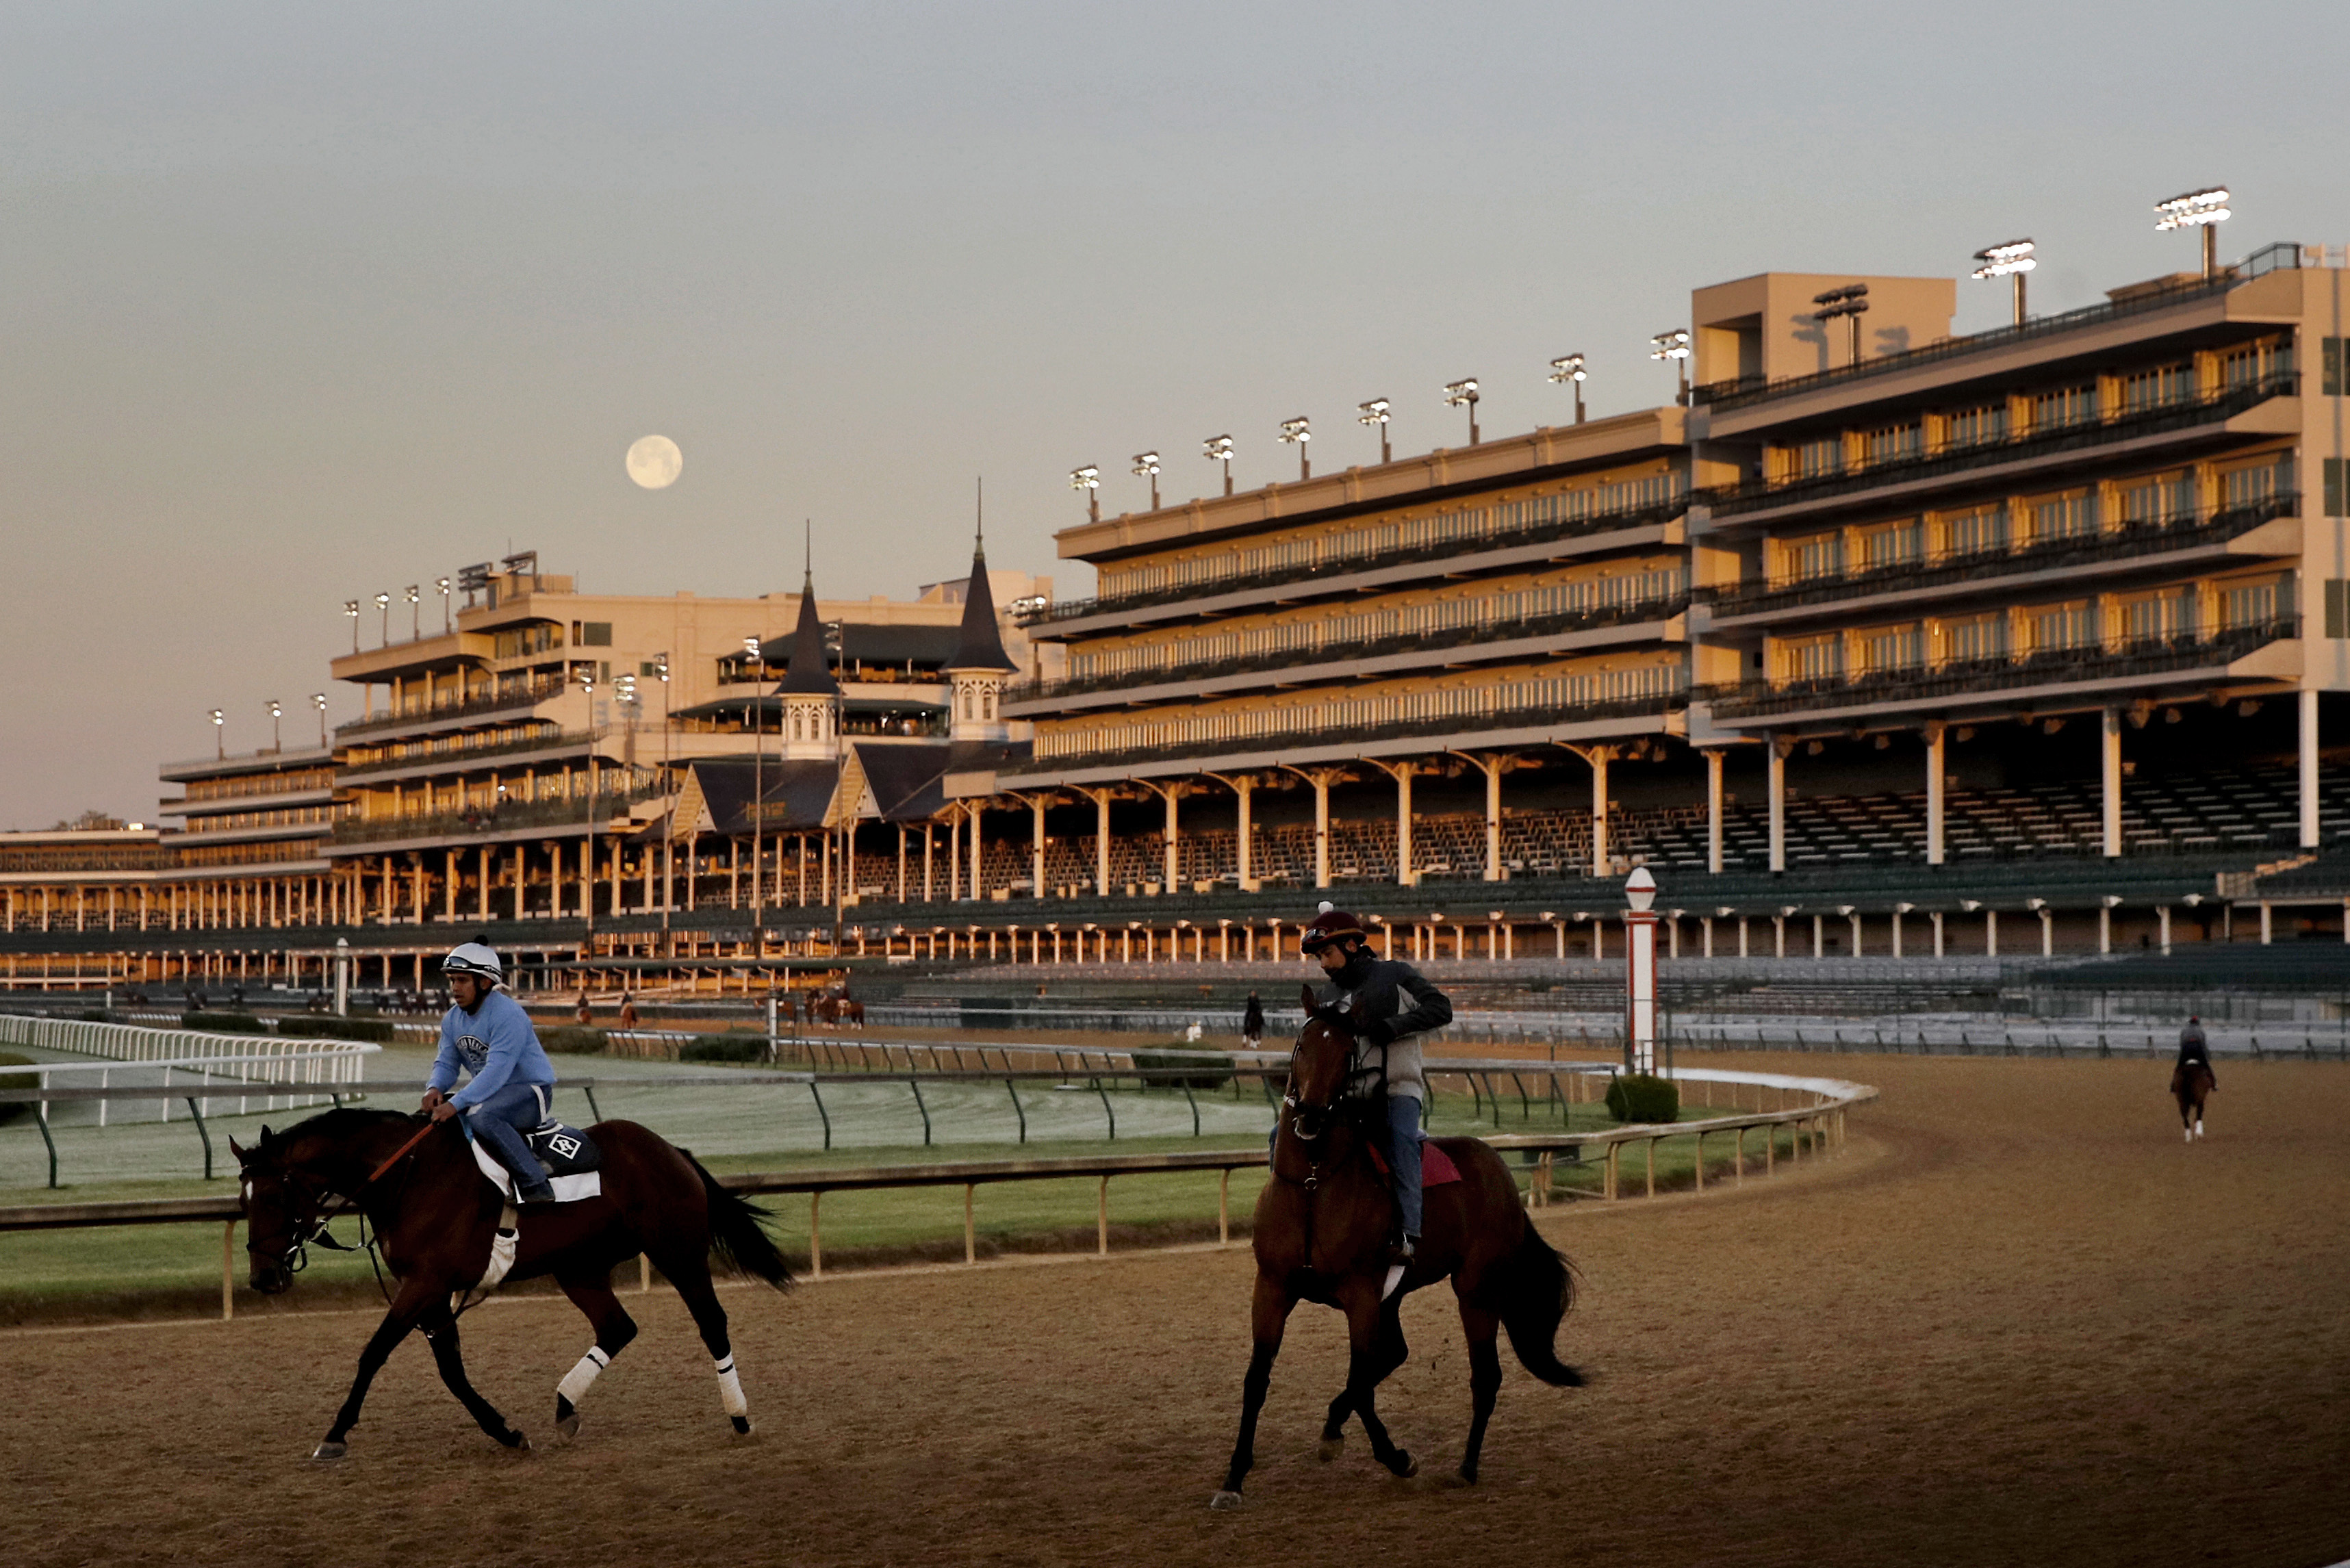 The full moon sets beyond the grandstands on a recent evening at Churchill Downs in Louisville, Kentucky.